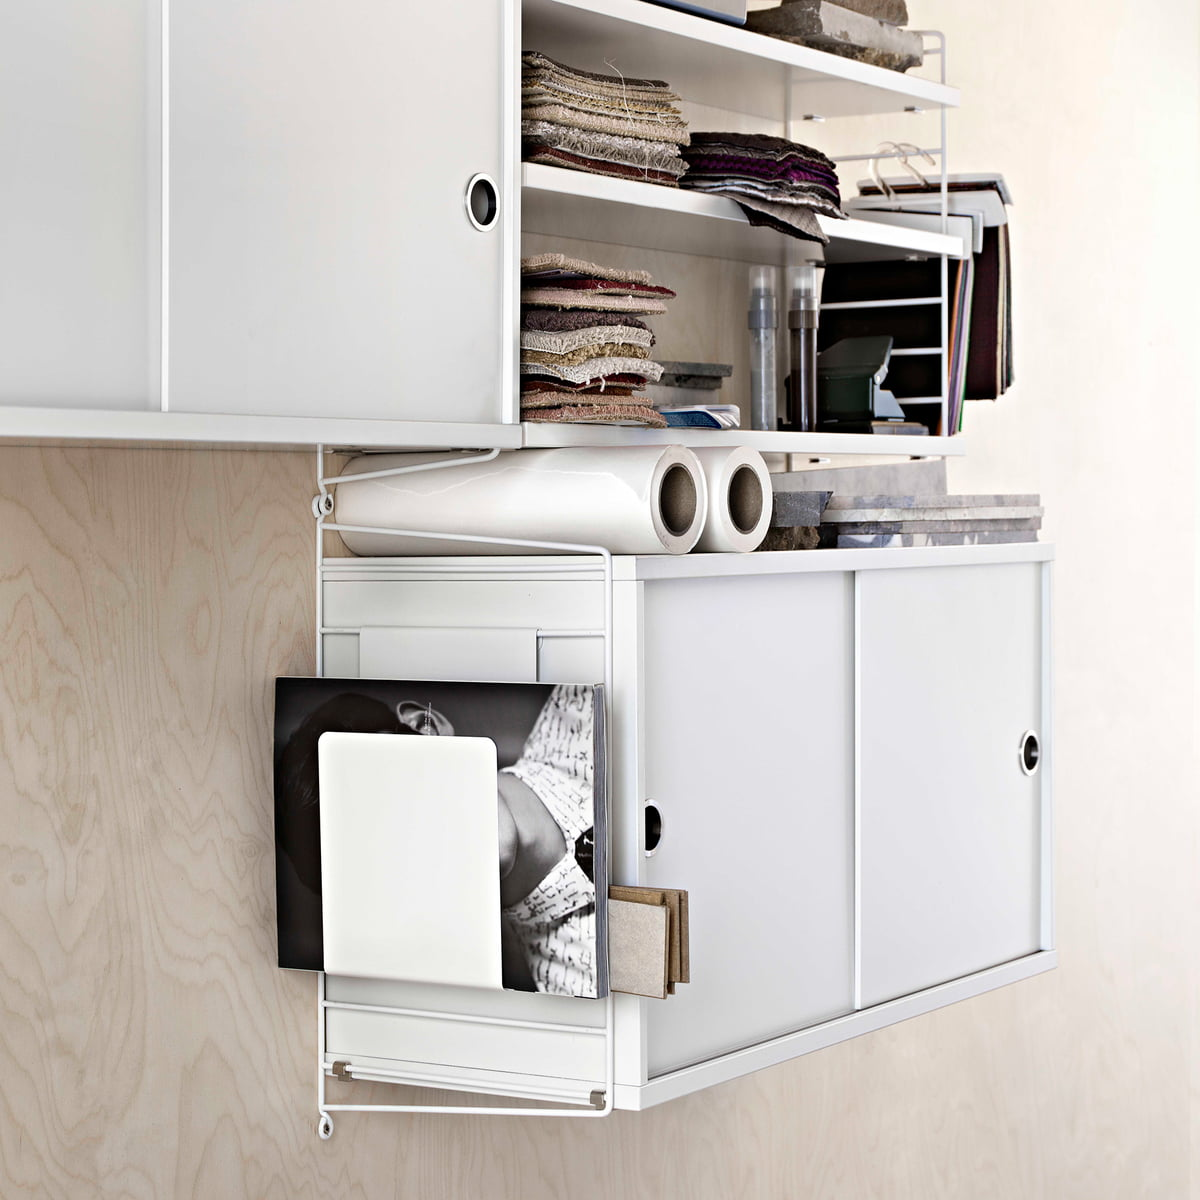 Cabinet Module With Sliding Doors By String In White With Magazine Rack